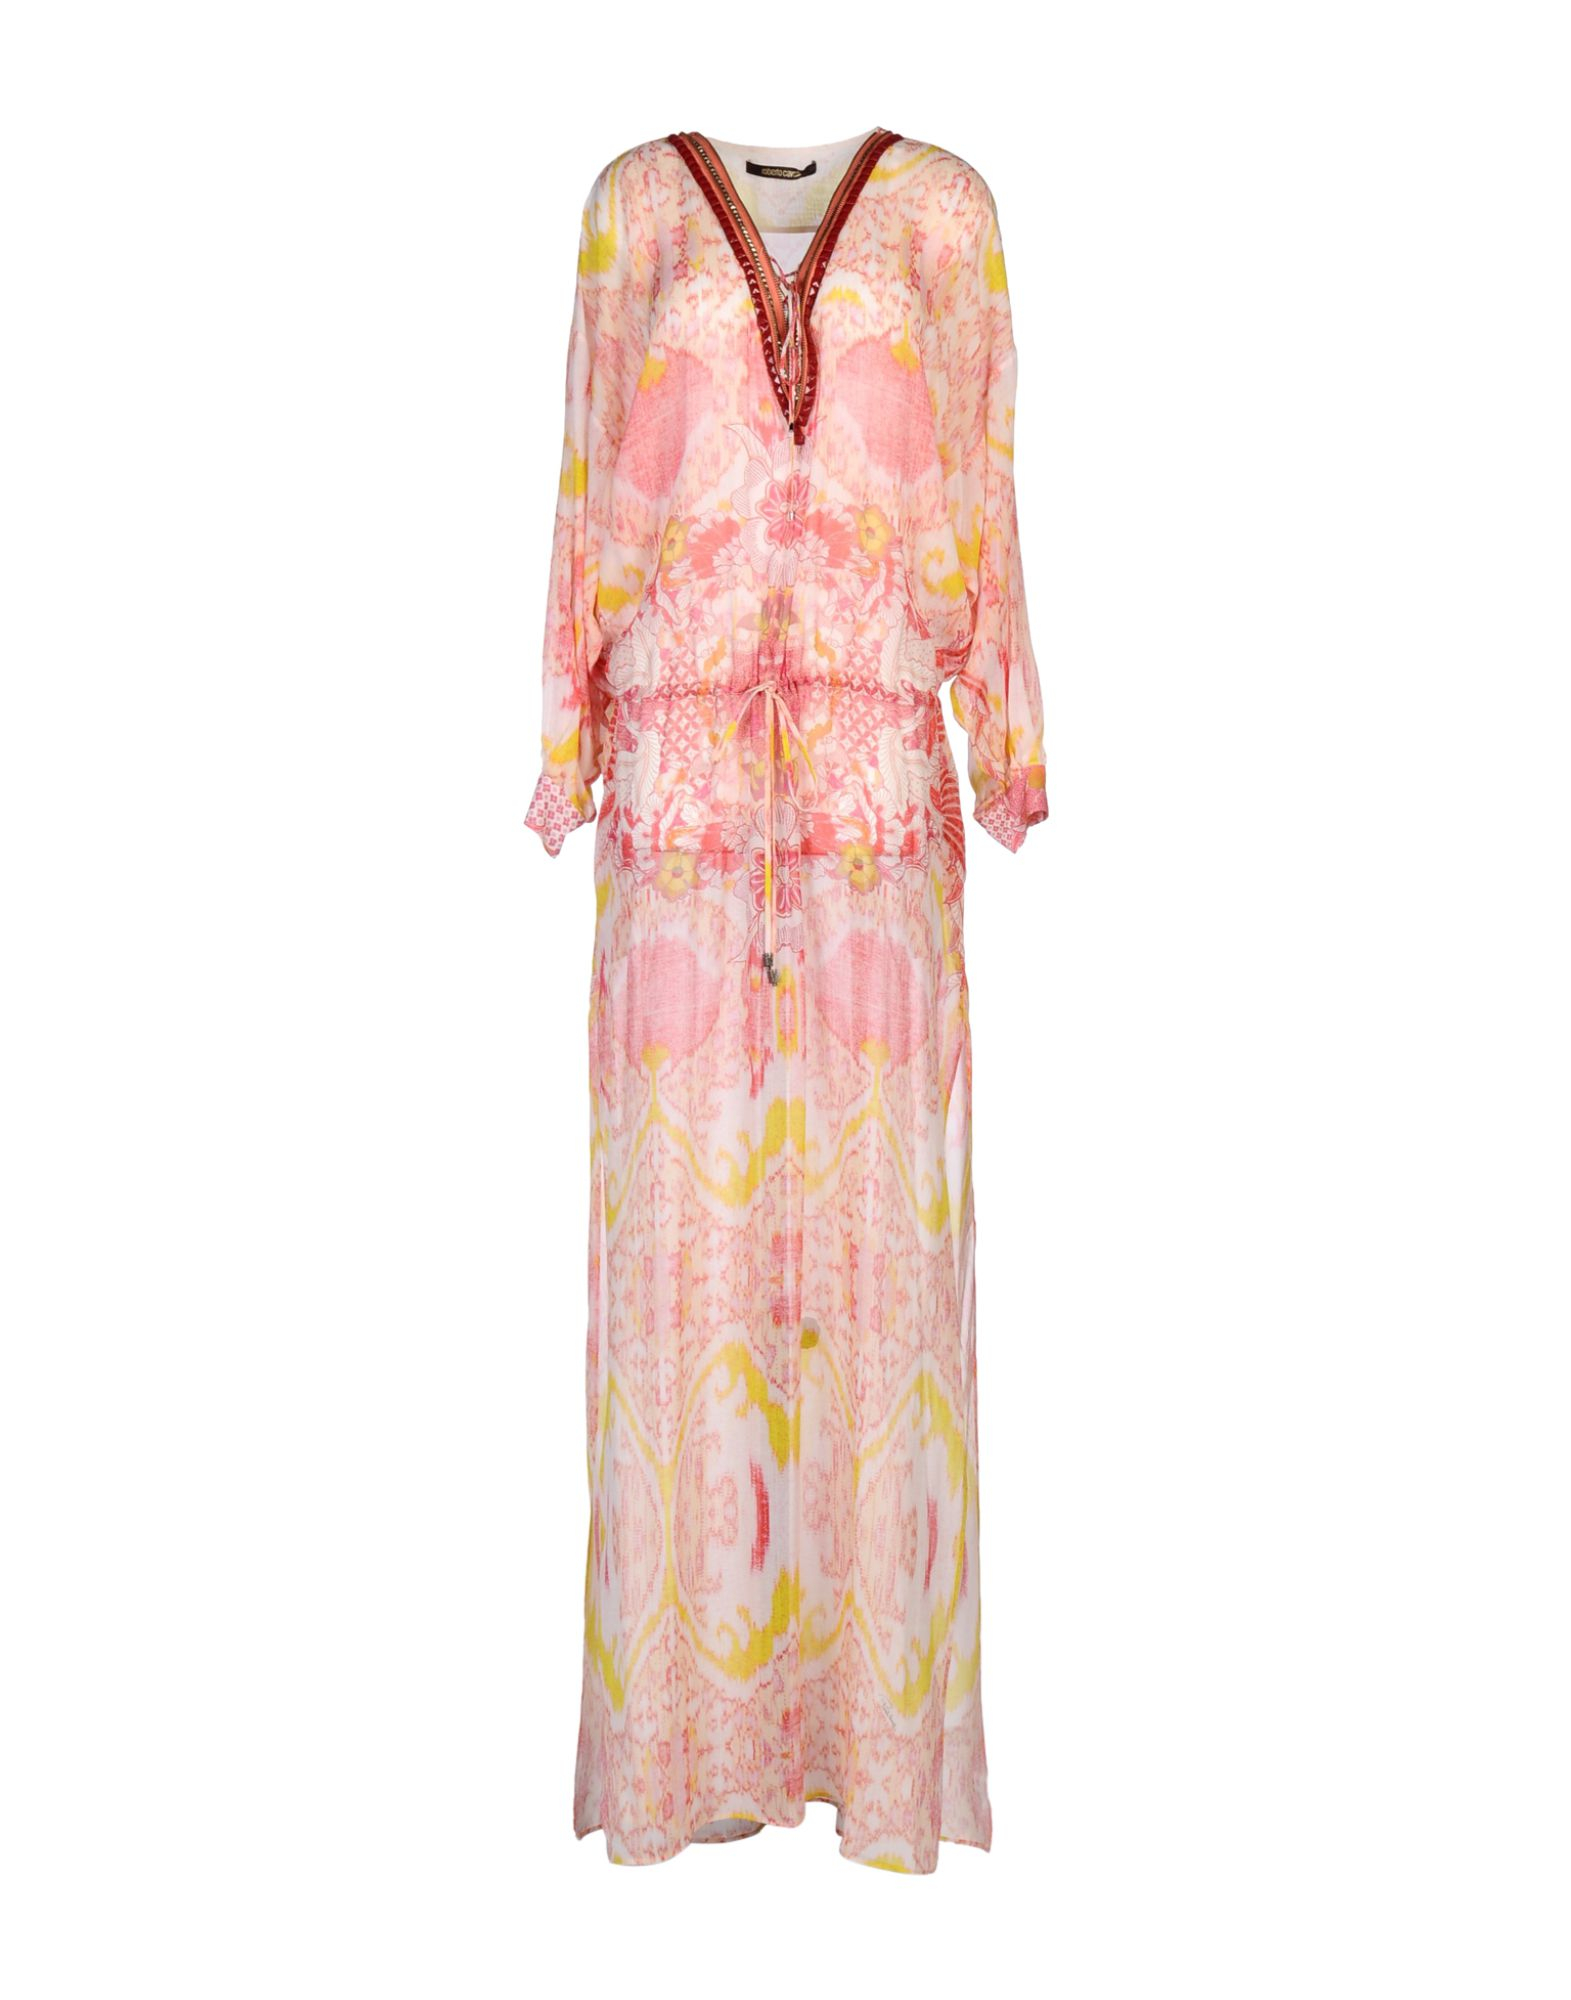 Buy Roberto Cavalli Women's Long Dress. Similar products also available. SALE now on!